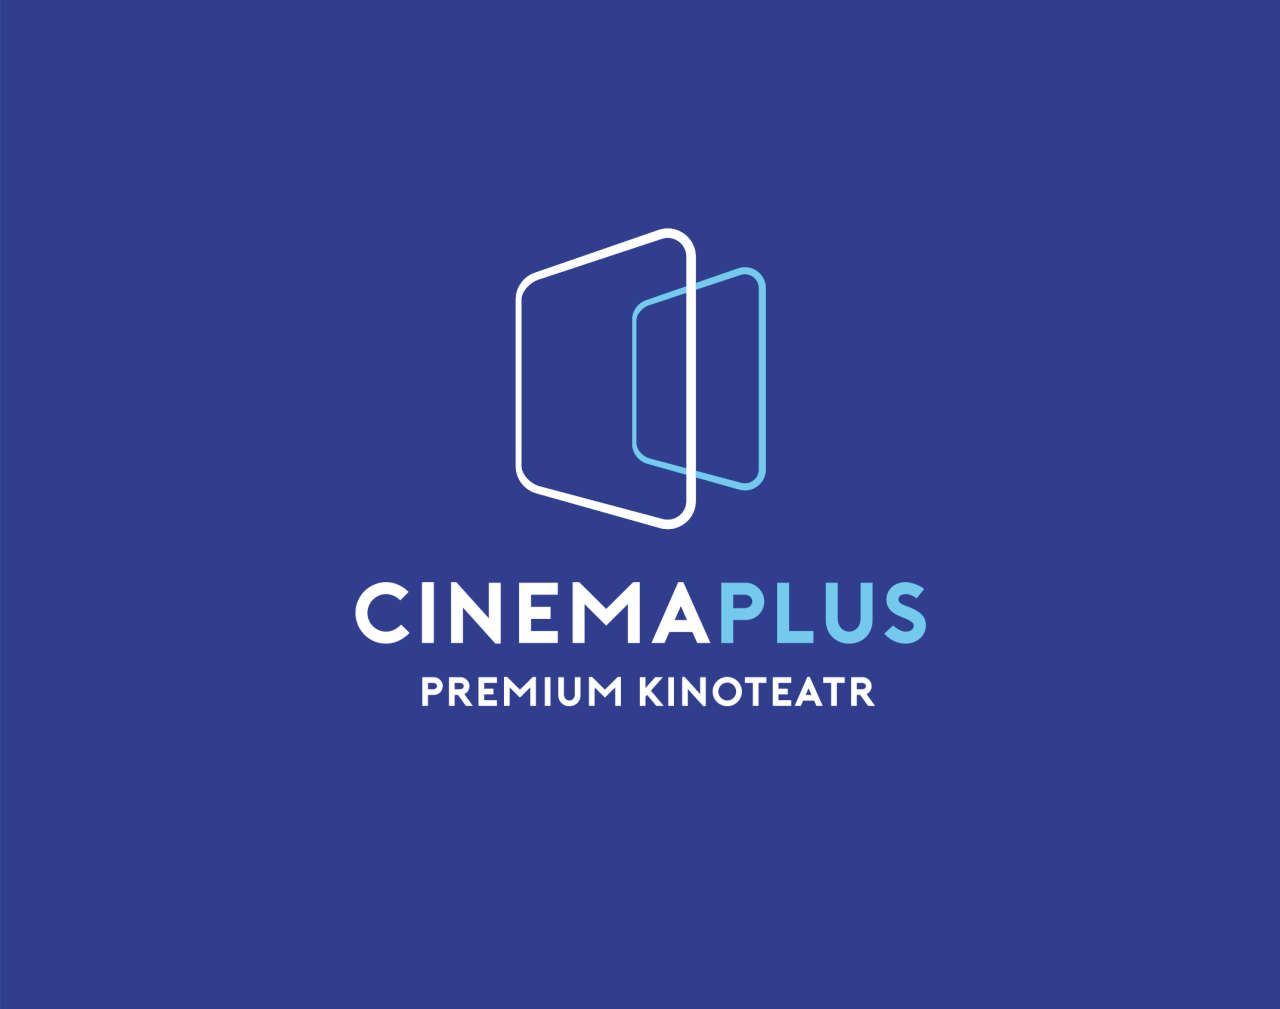 CinemaPlus приступил к показу голливудских фильмов с азербайджанскими субтитрами